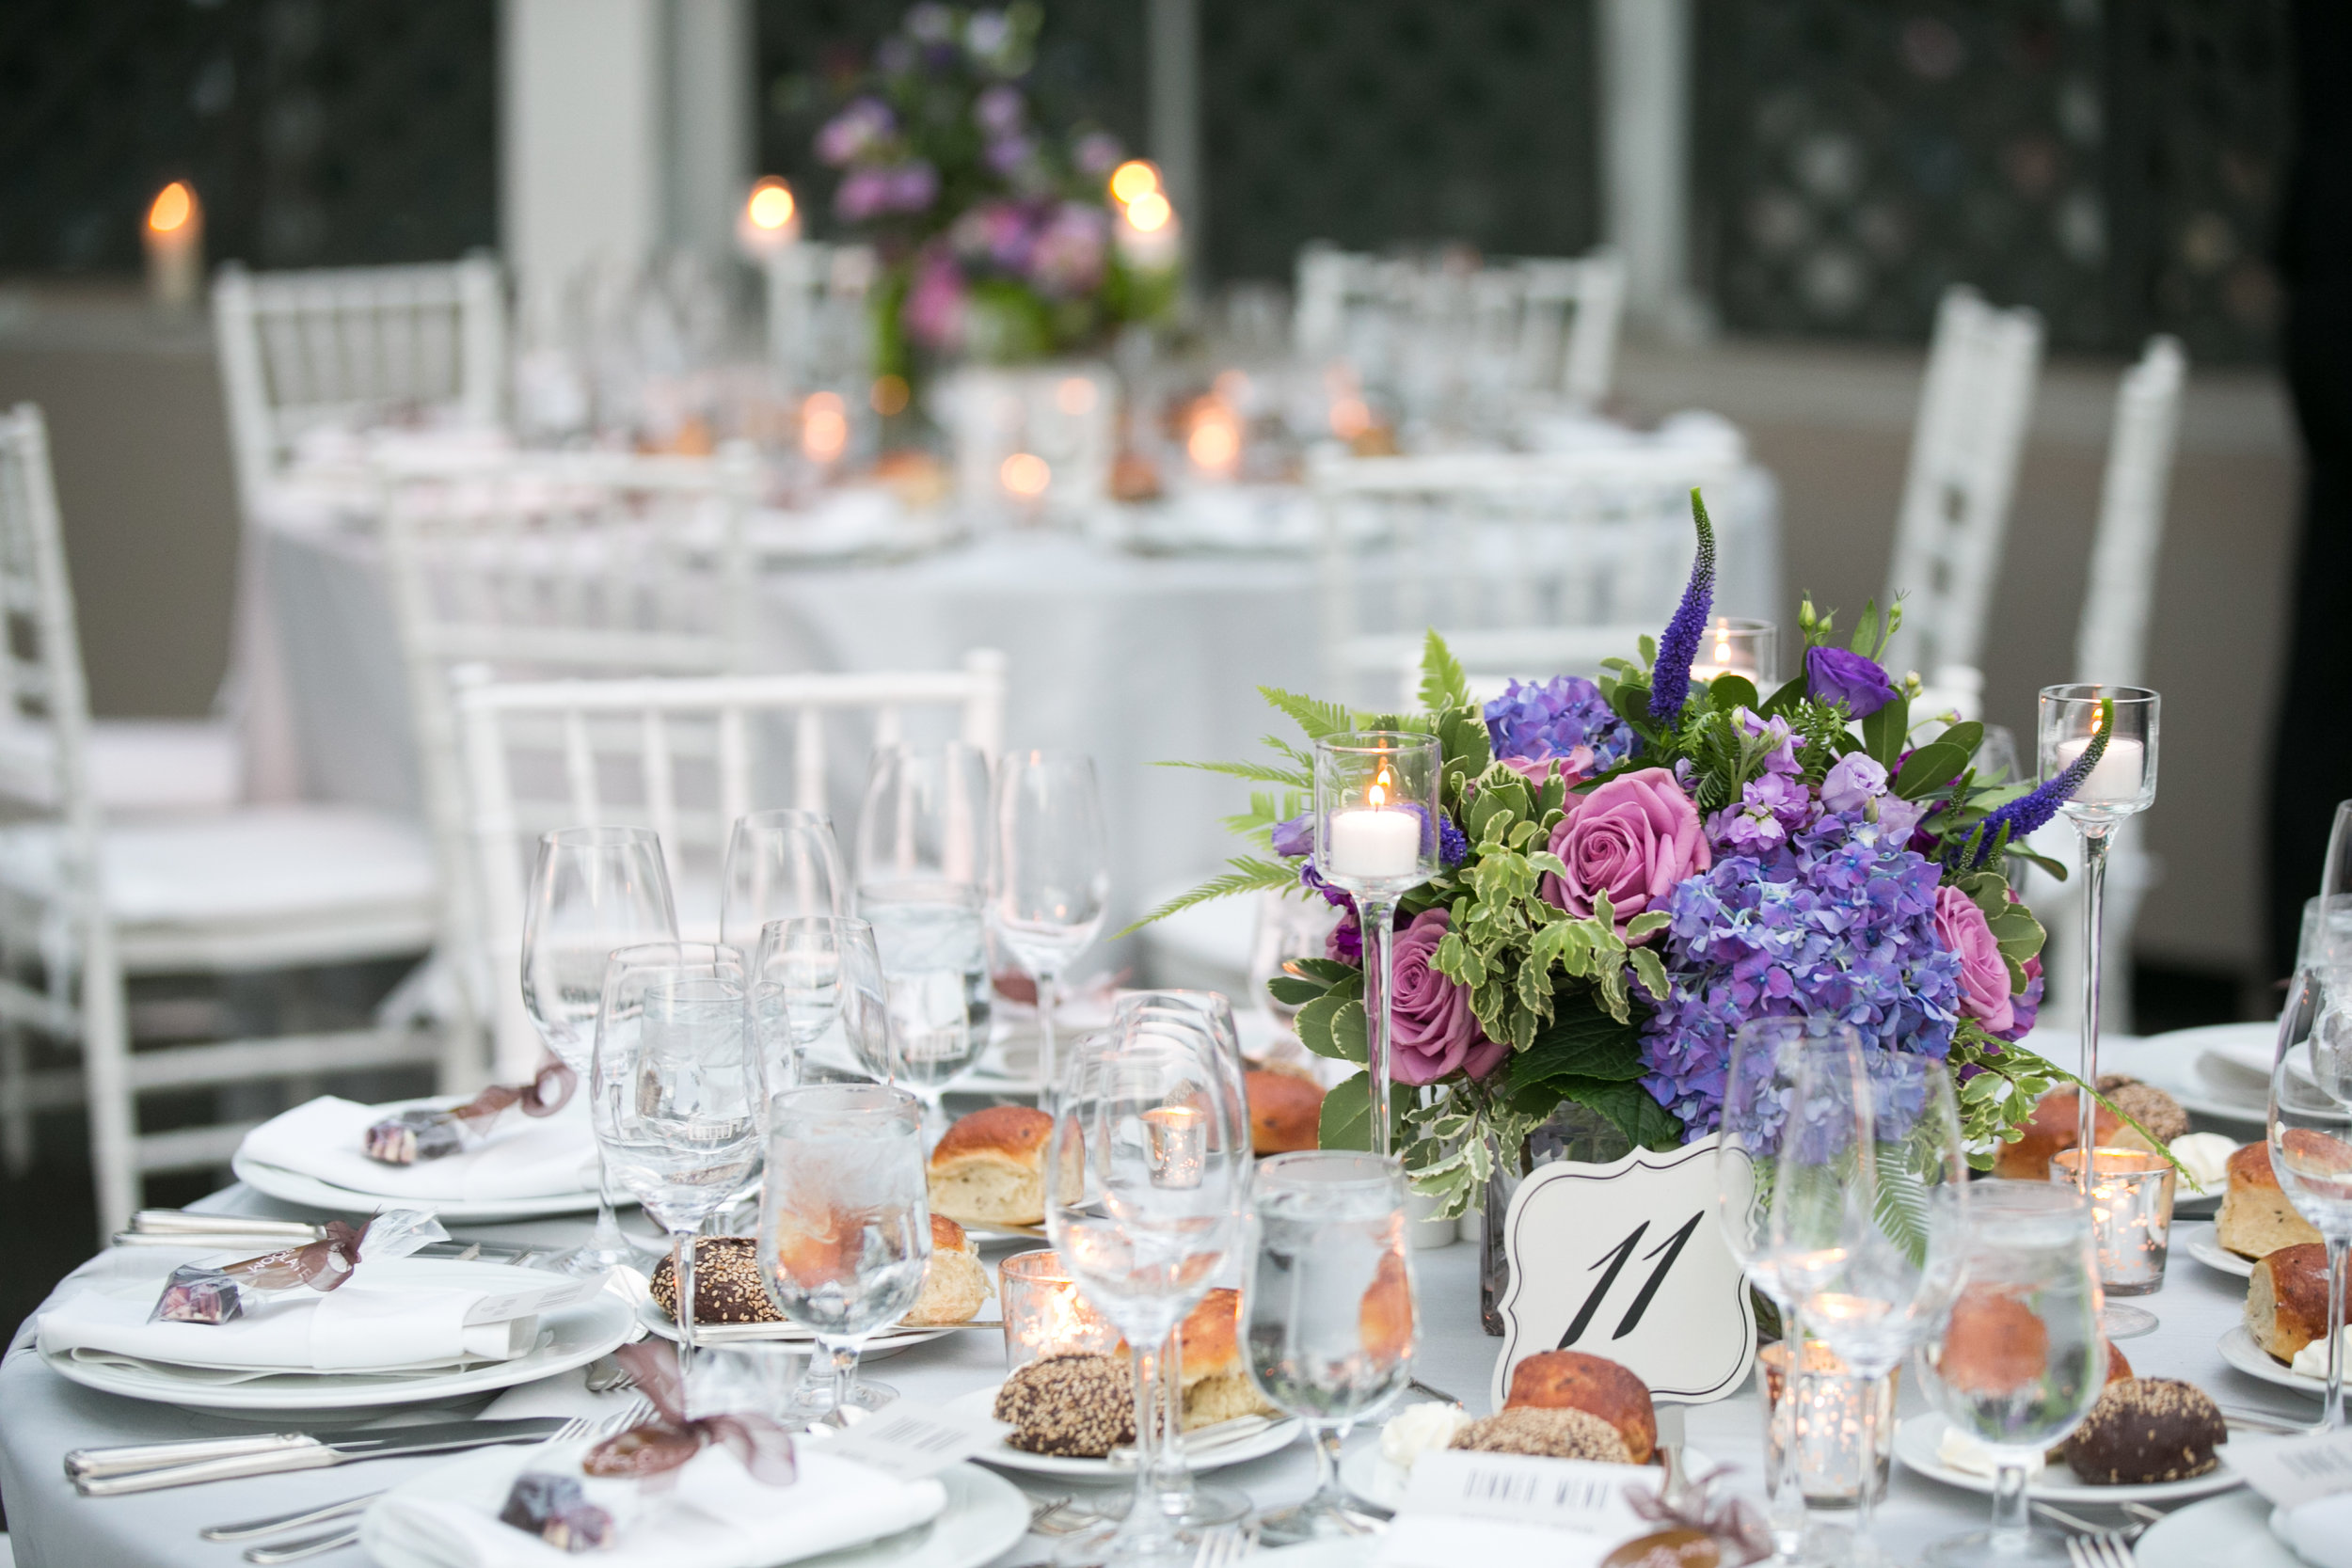 Purple centerpieces with candlelight